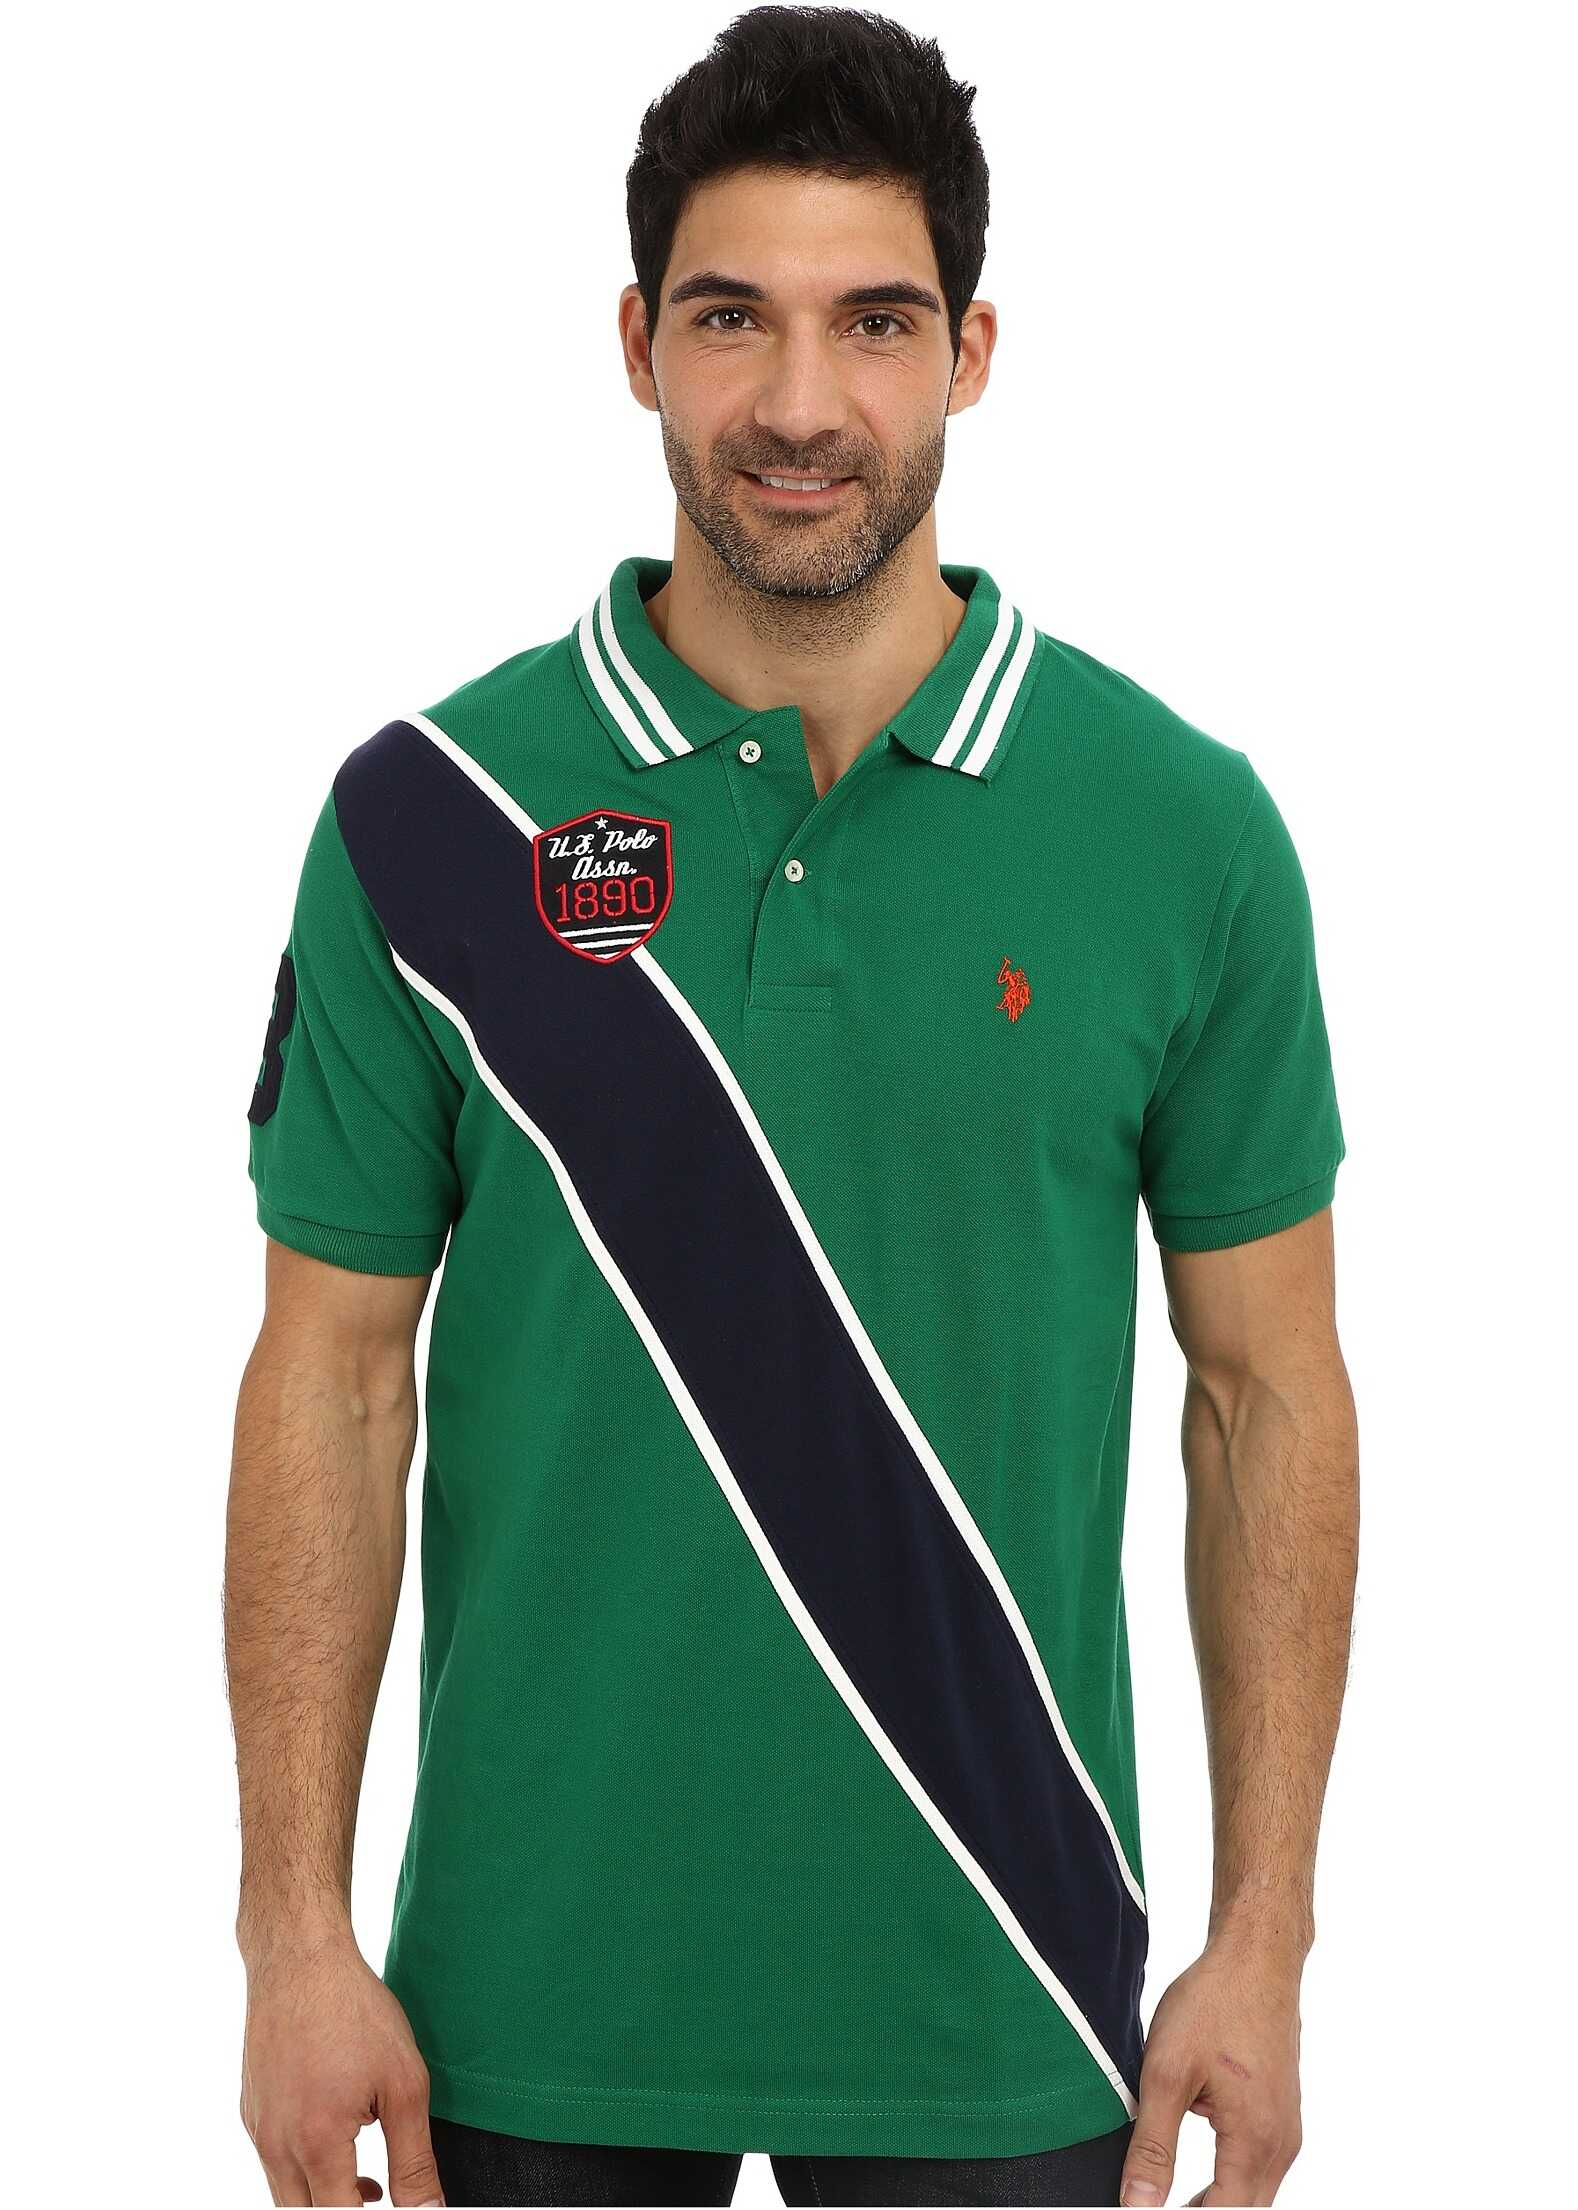 U.S. POLO ASSN. Diagonal Stripes Short Sleeve Pique Polo Hiking Green